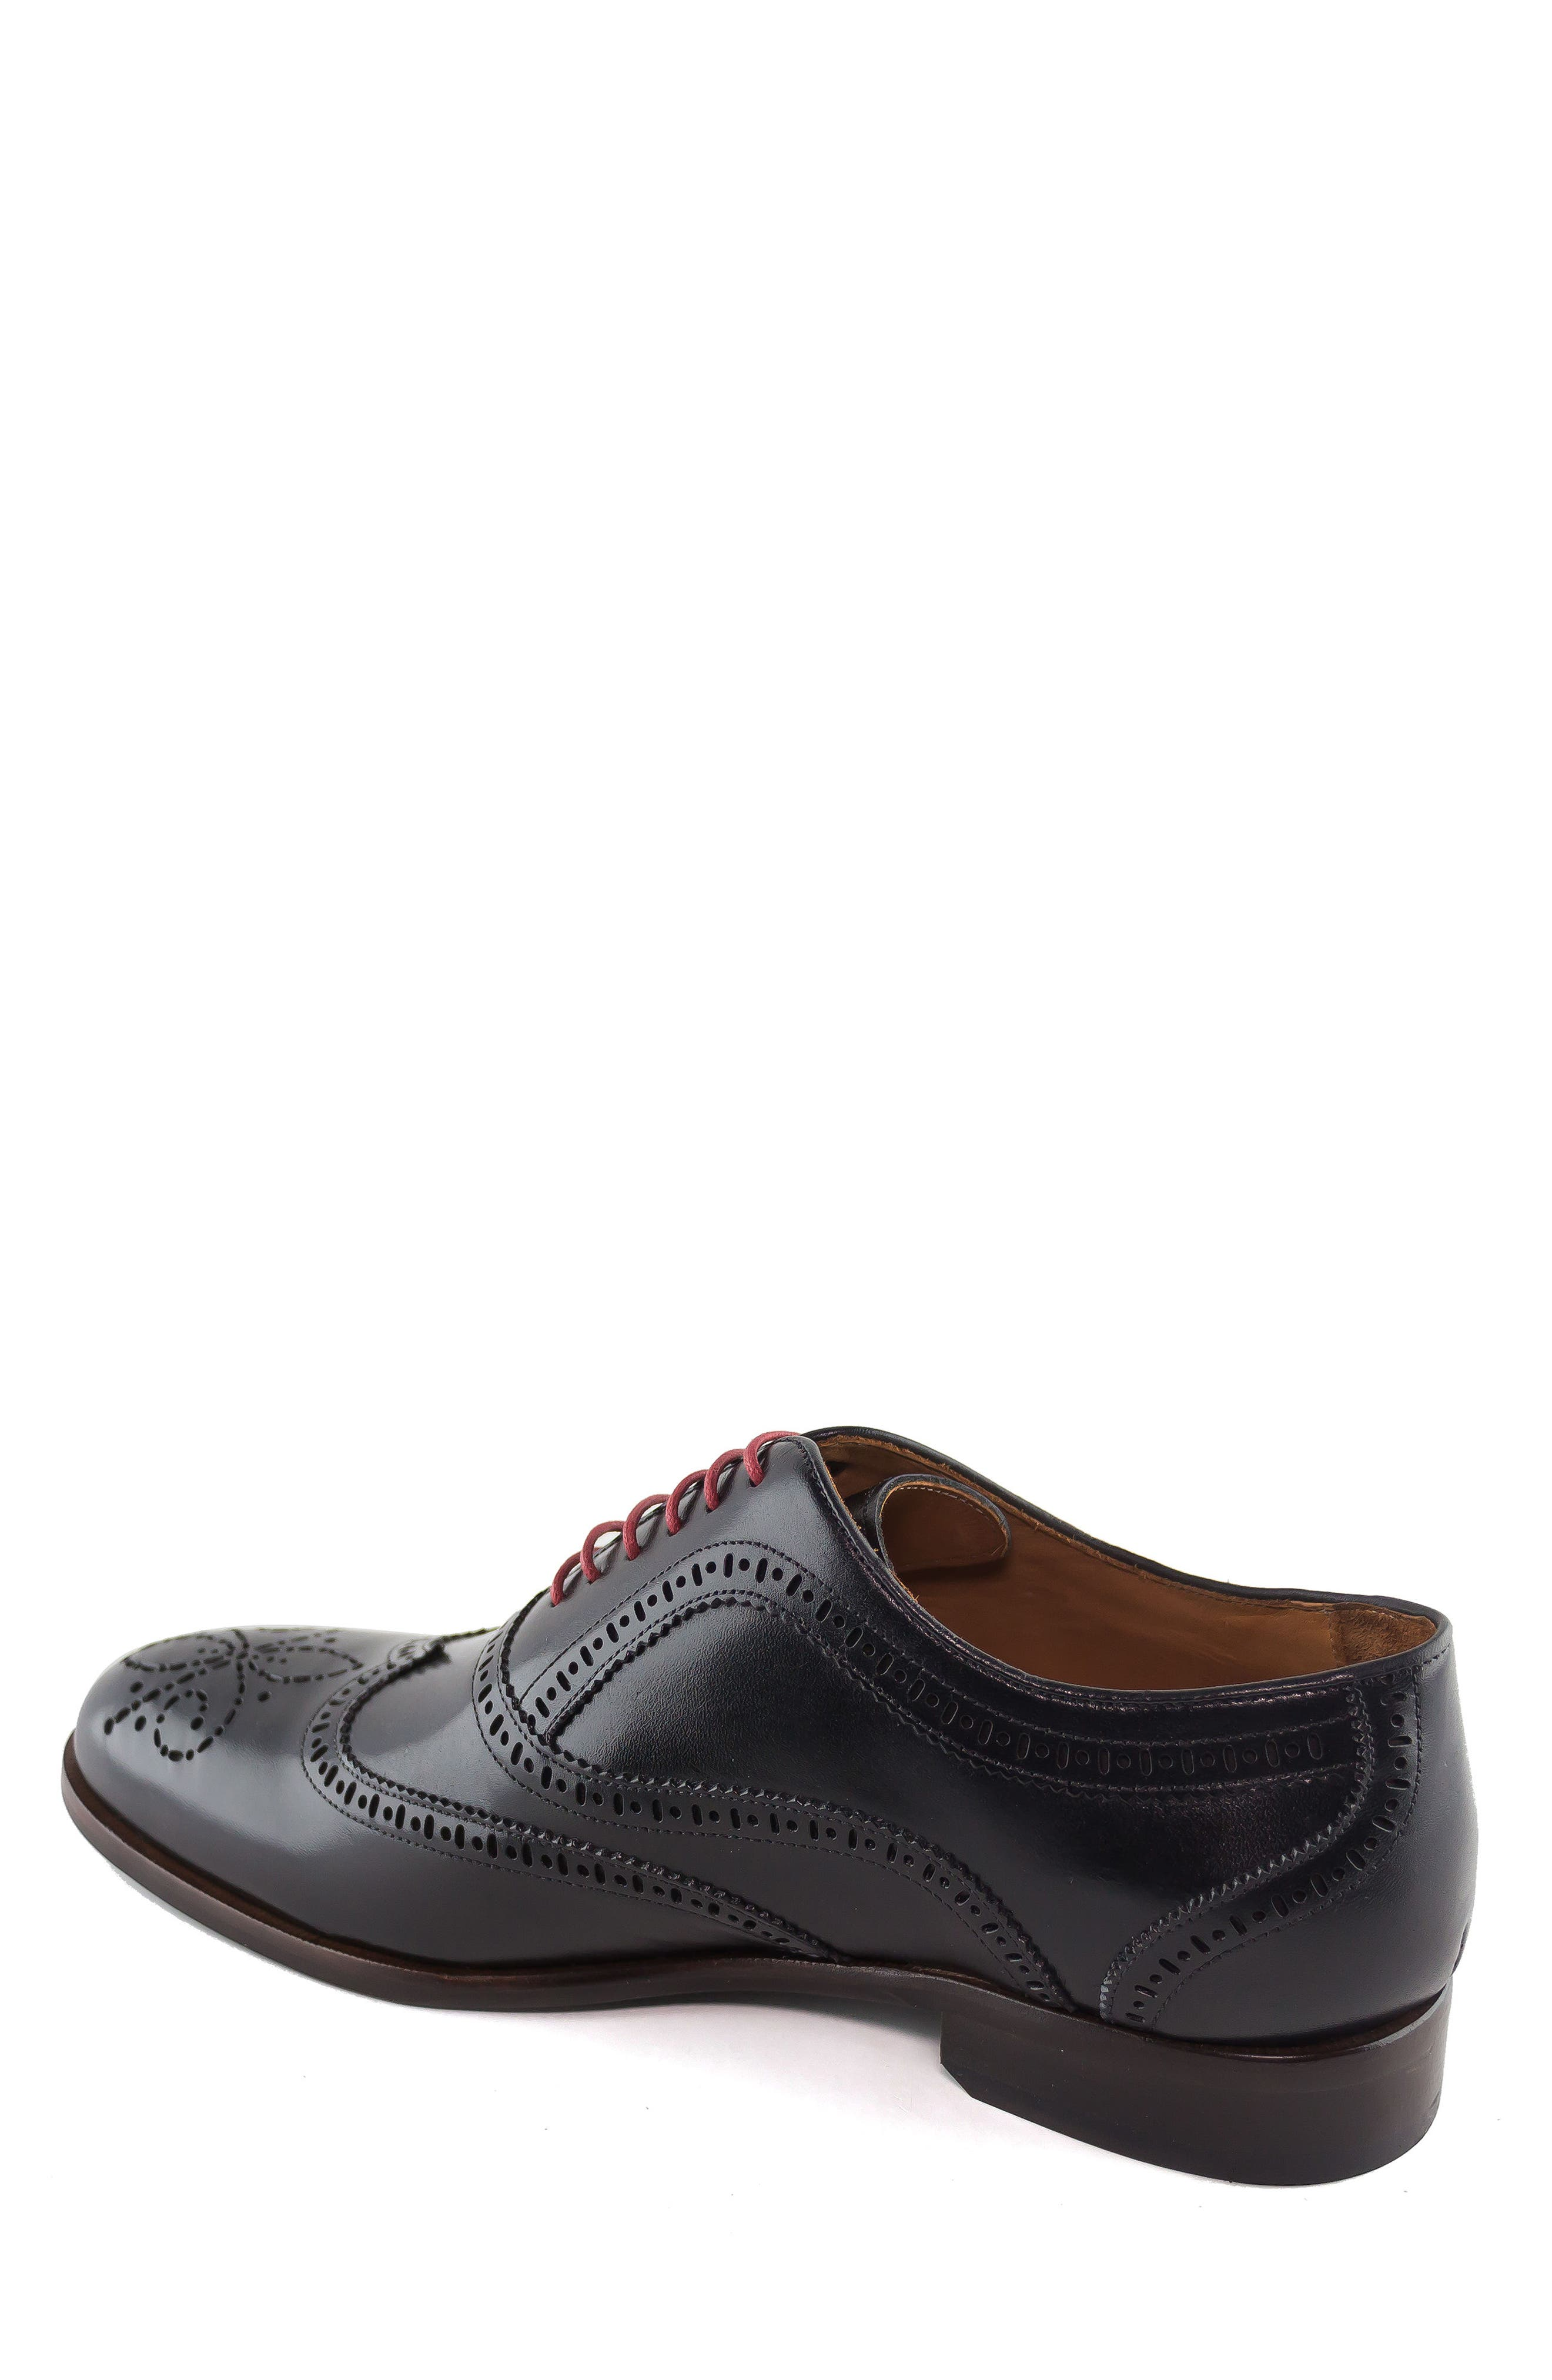 Madison Wingtip Oxford,                             Alternate thumbnail 2, color,                             BLACK